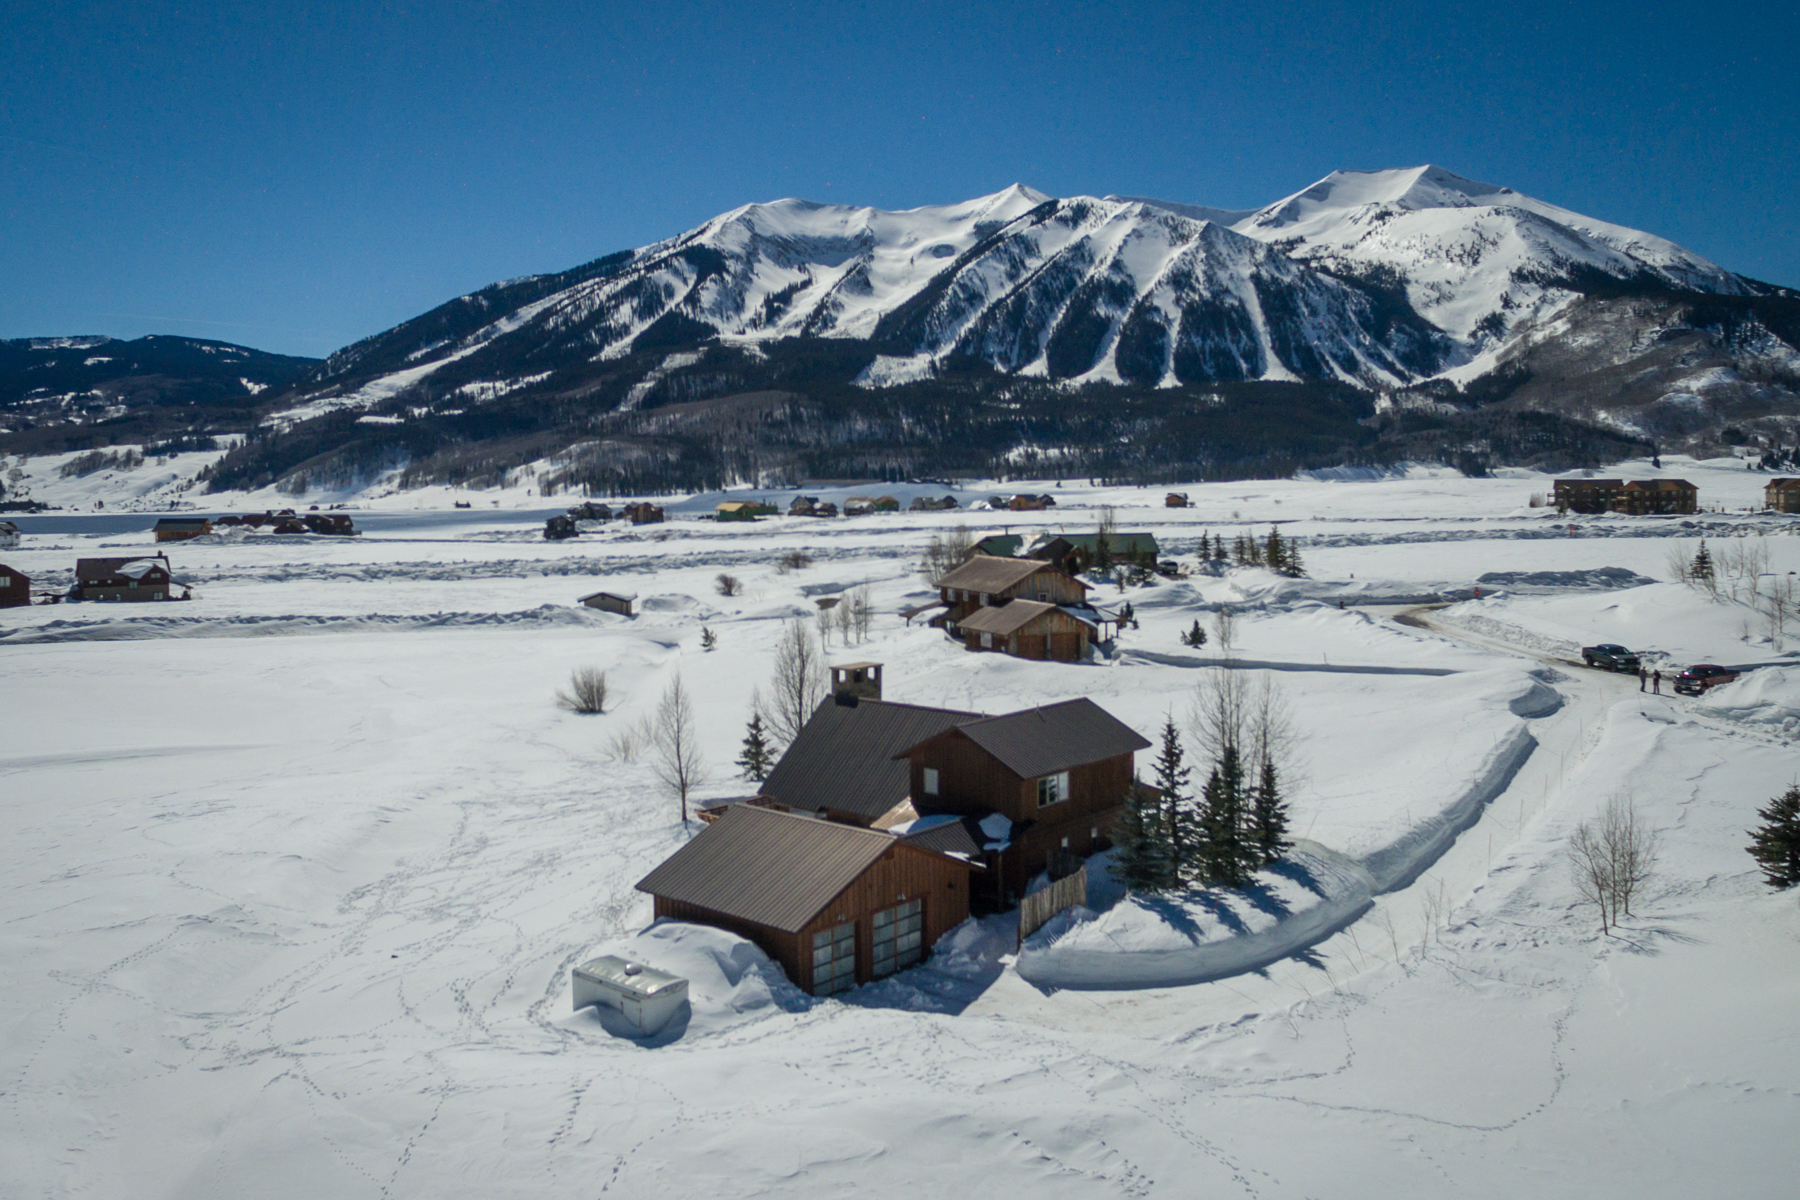 Single Family Home for Sale at Darling Country Home 33 Earhart Lane Crested Butte, Colorado, 81224 United States